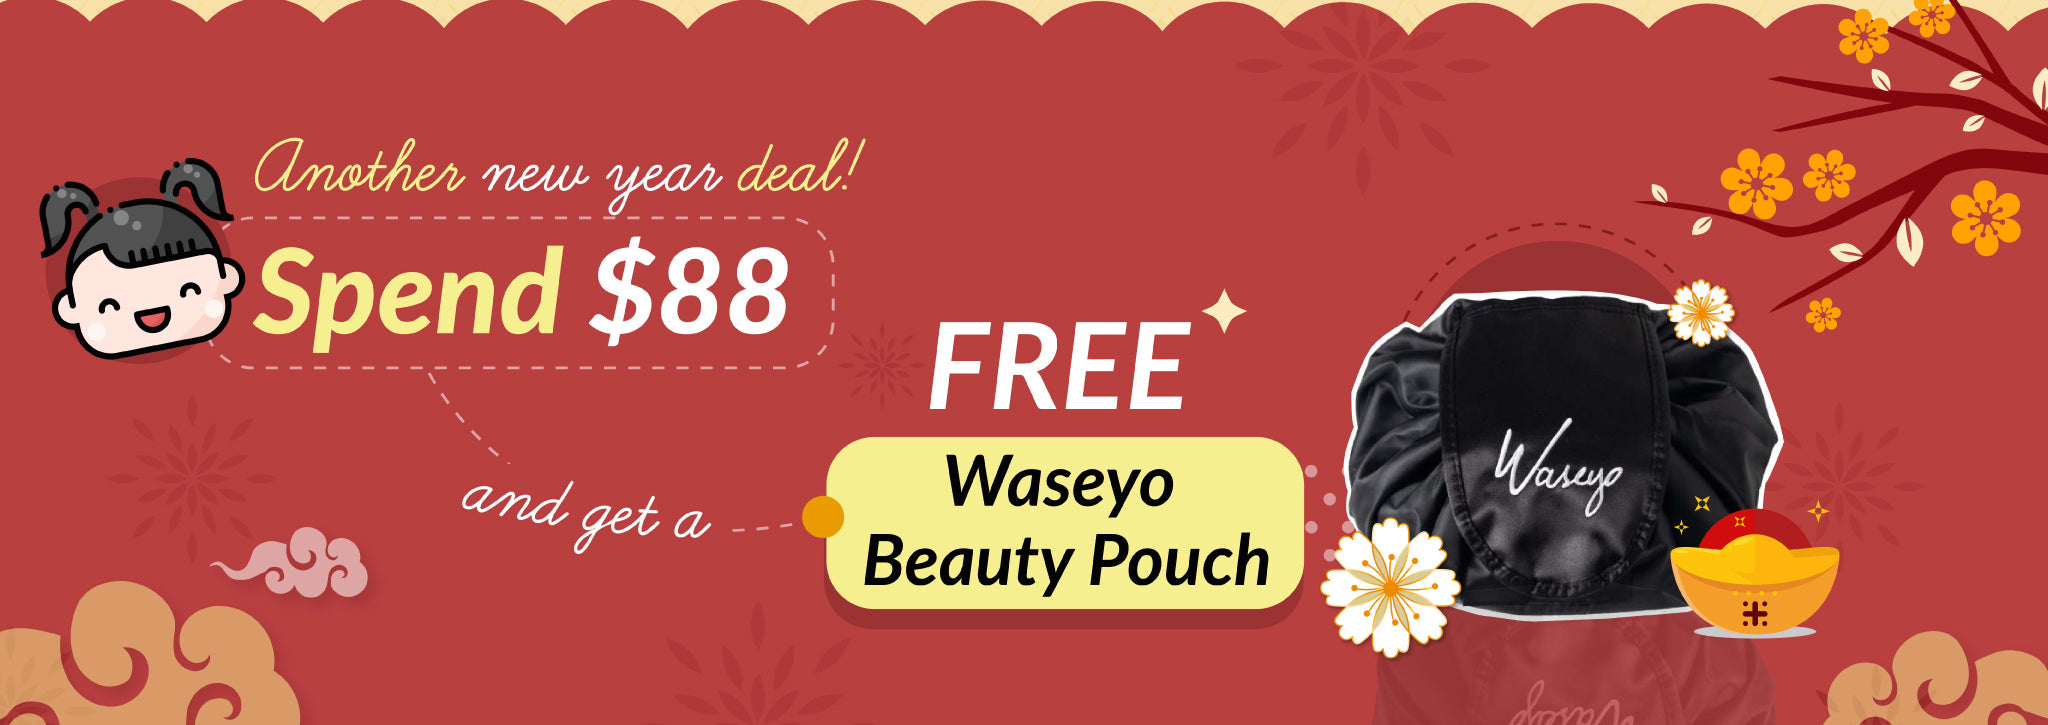 Get a FREE Waseyo Pouch with $88 Spent!